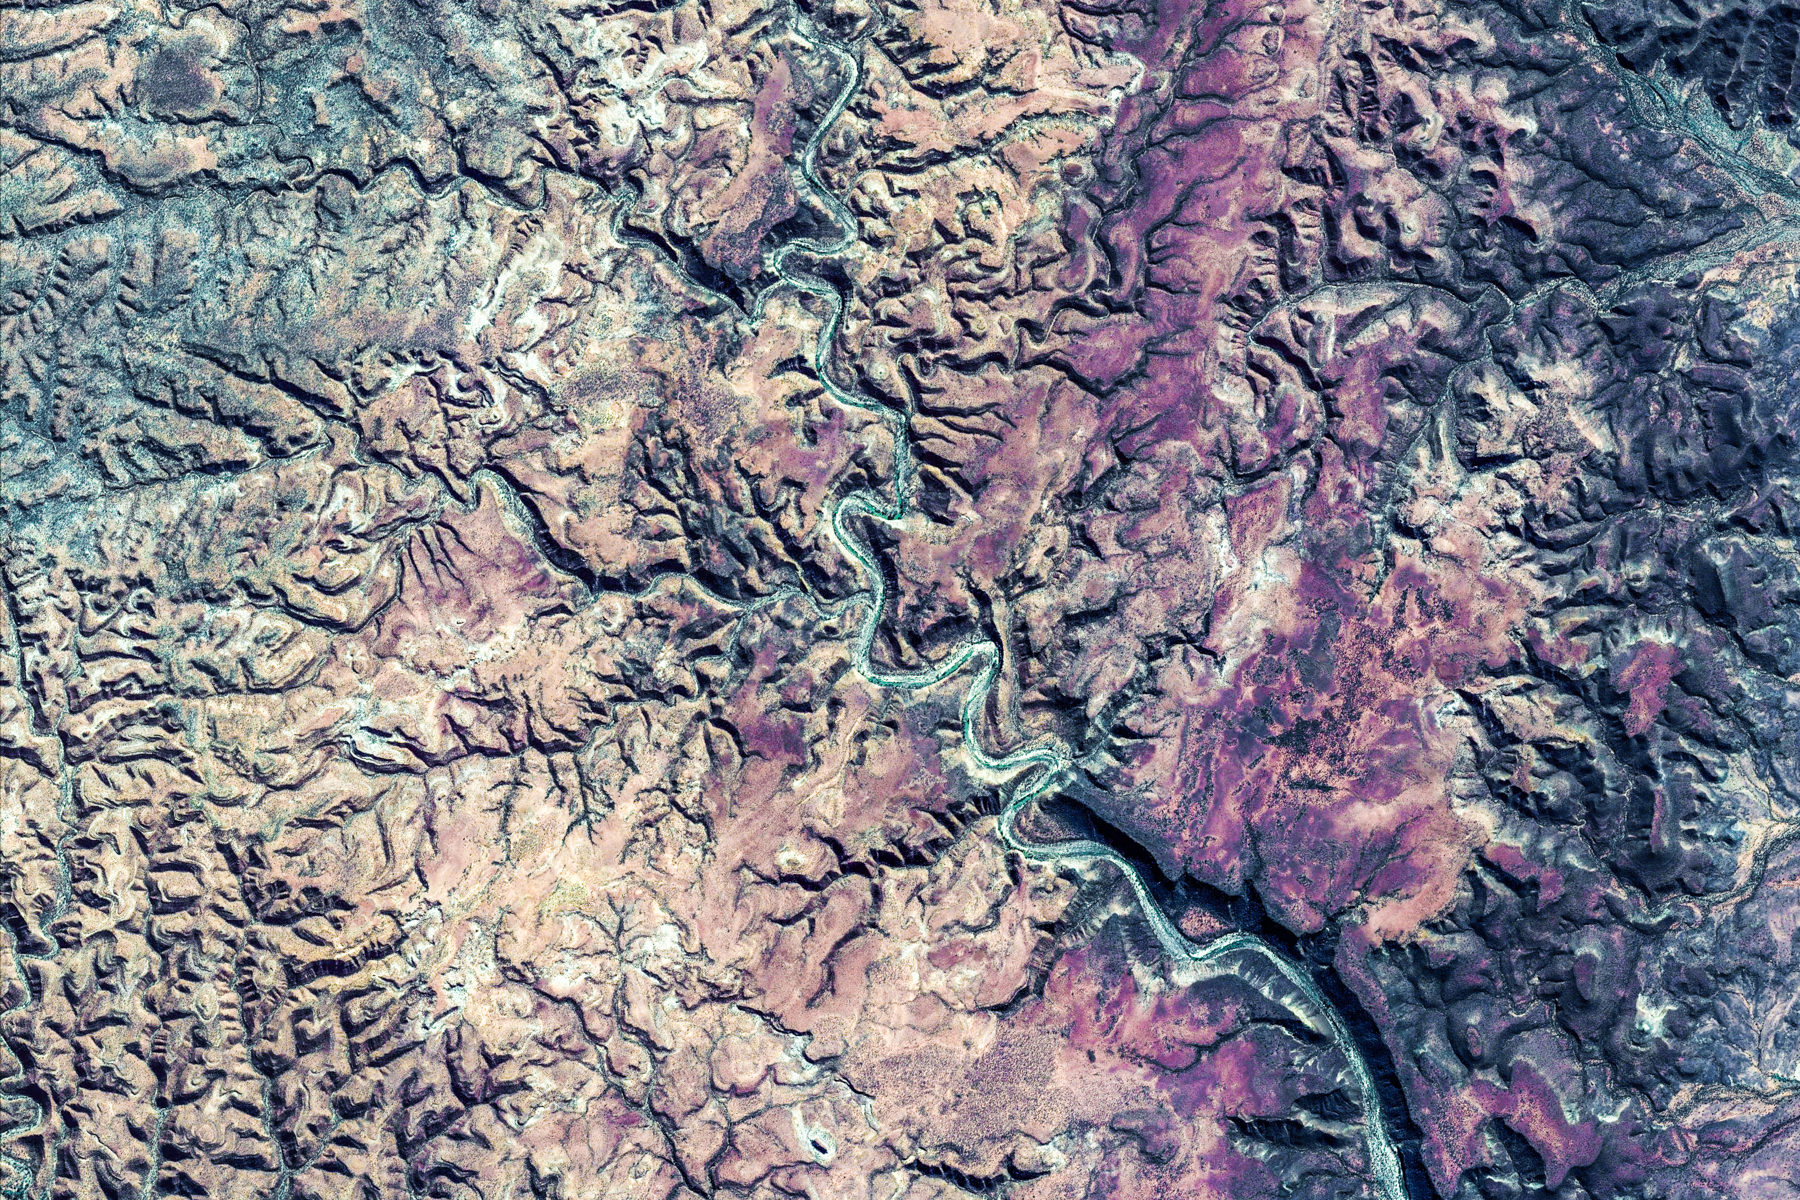 google-earth-Australia-KennadyRange-14573